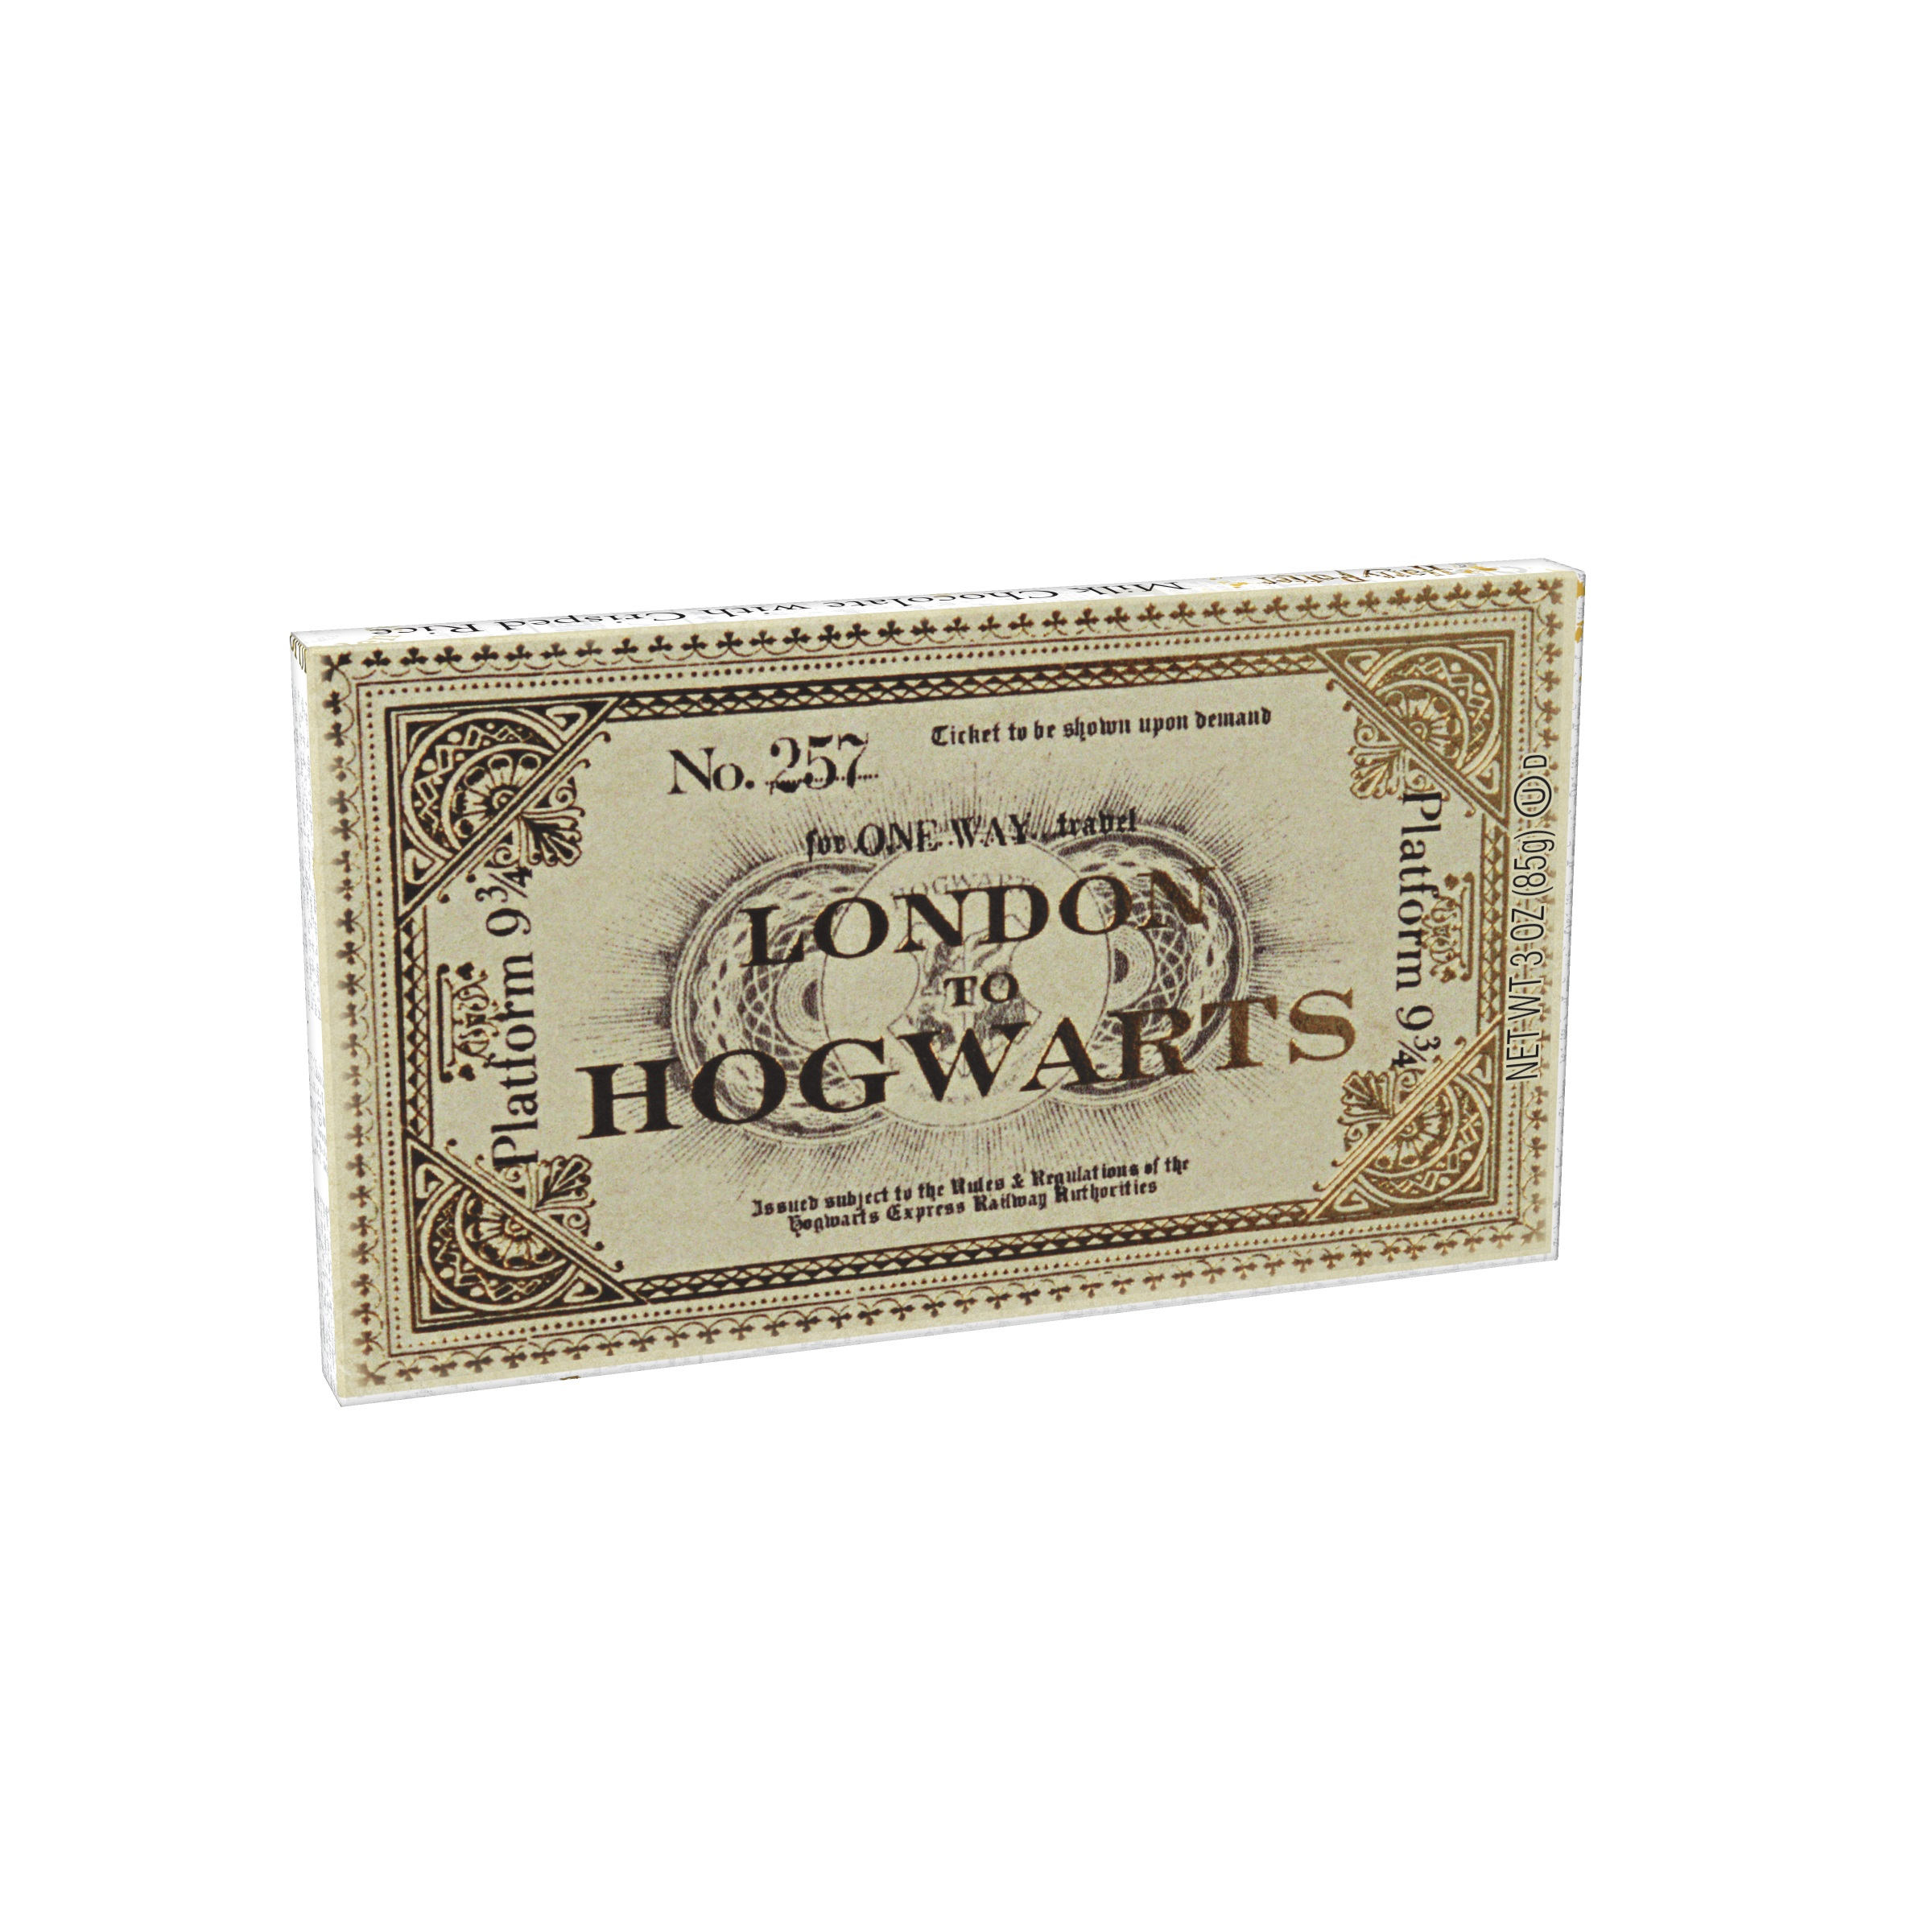 (G) HARRY POTTER PLATFORM TICKET BAR - 24 CT